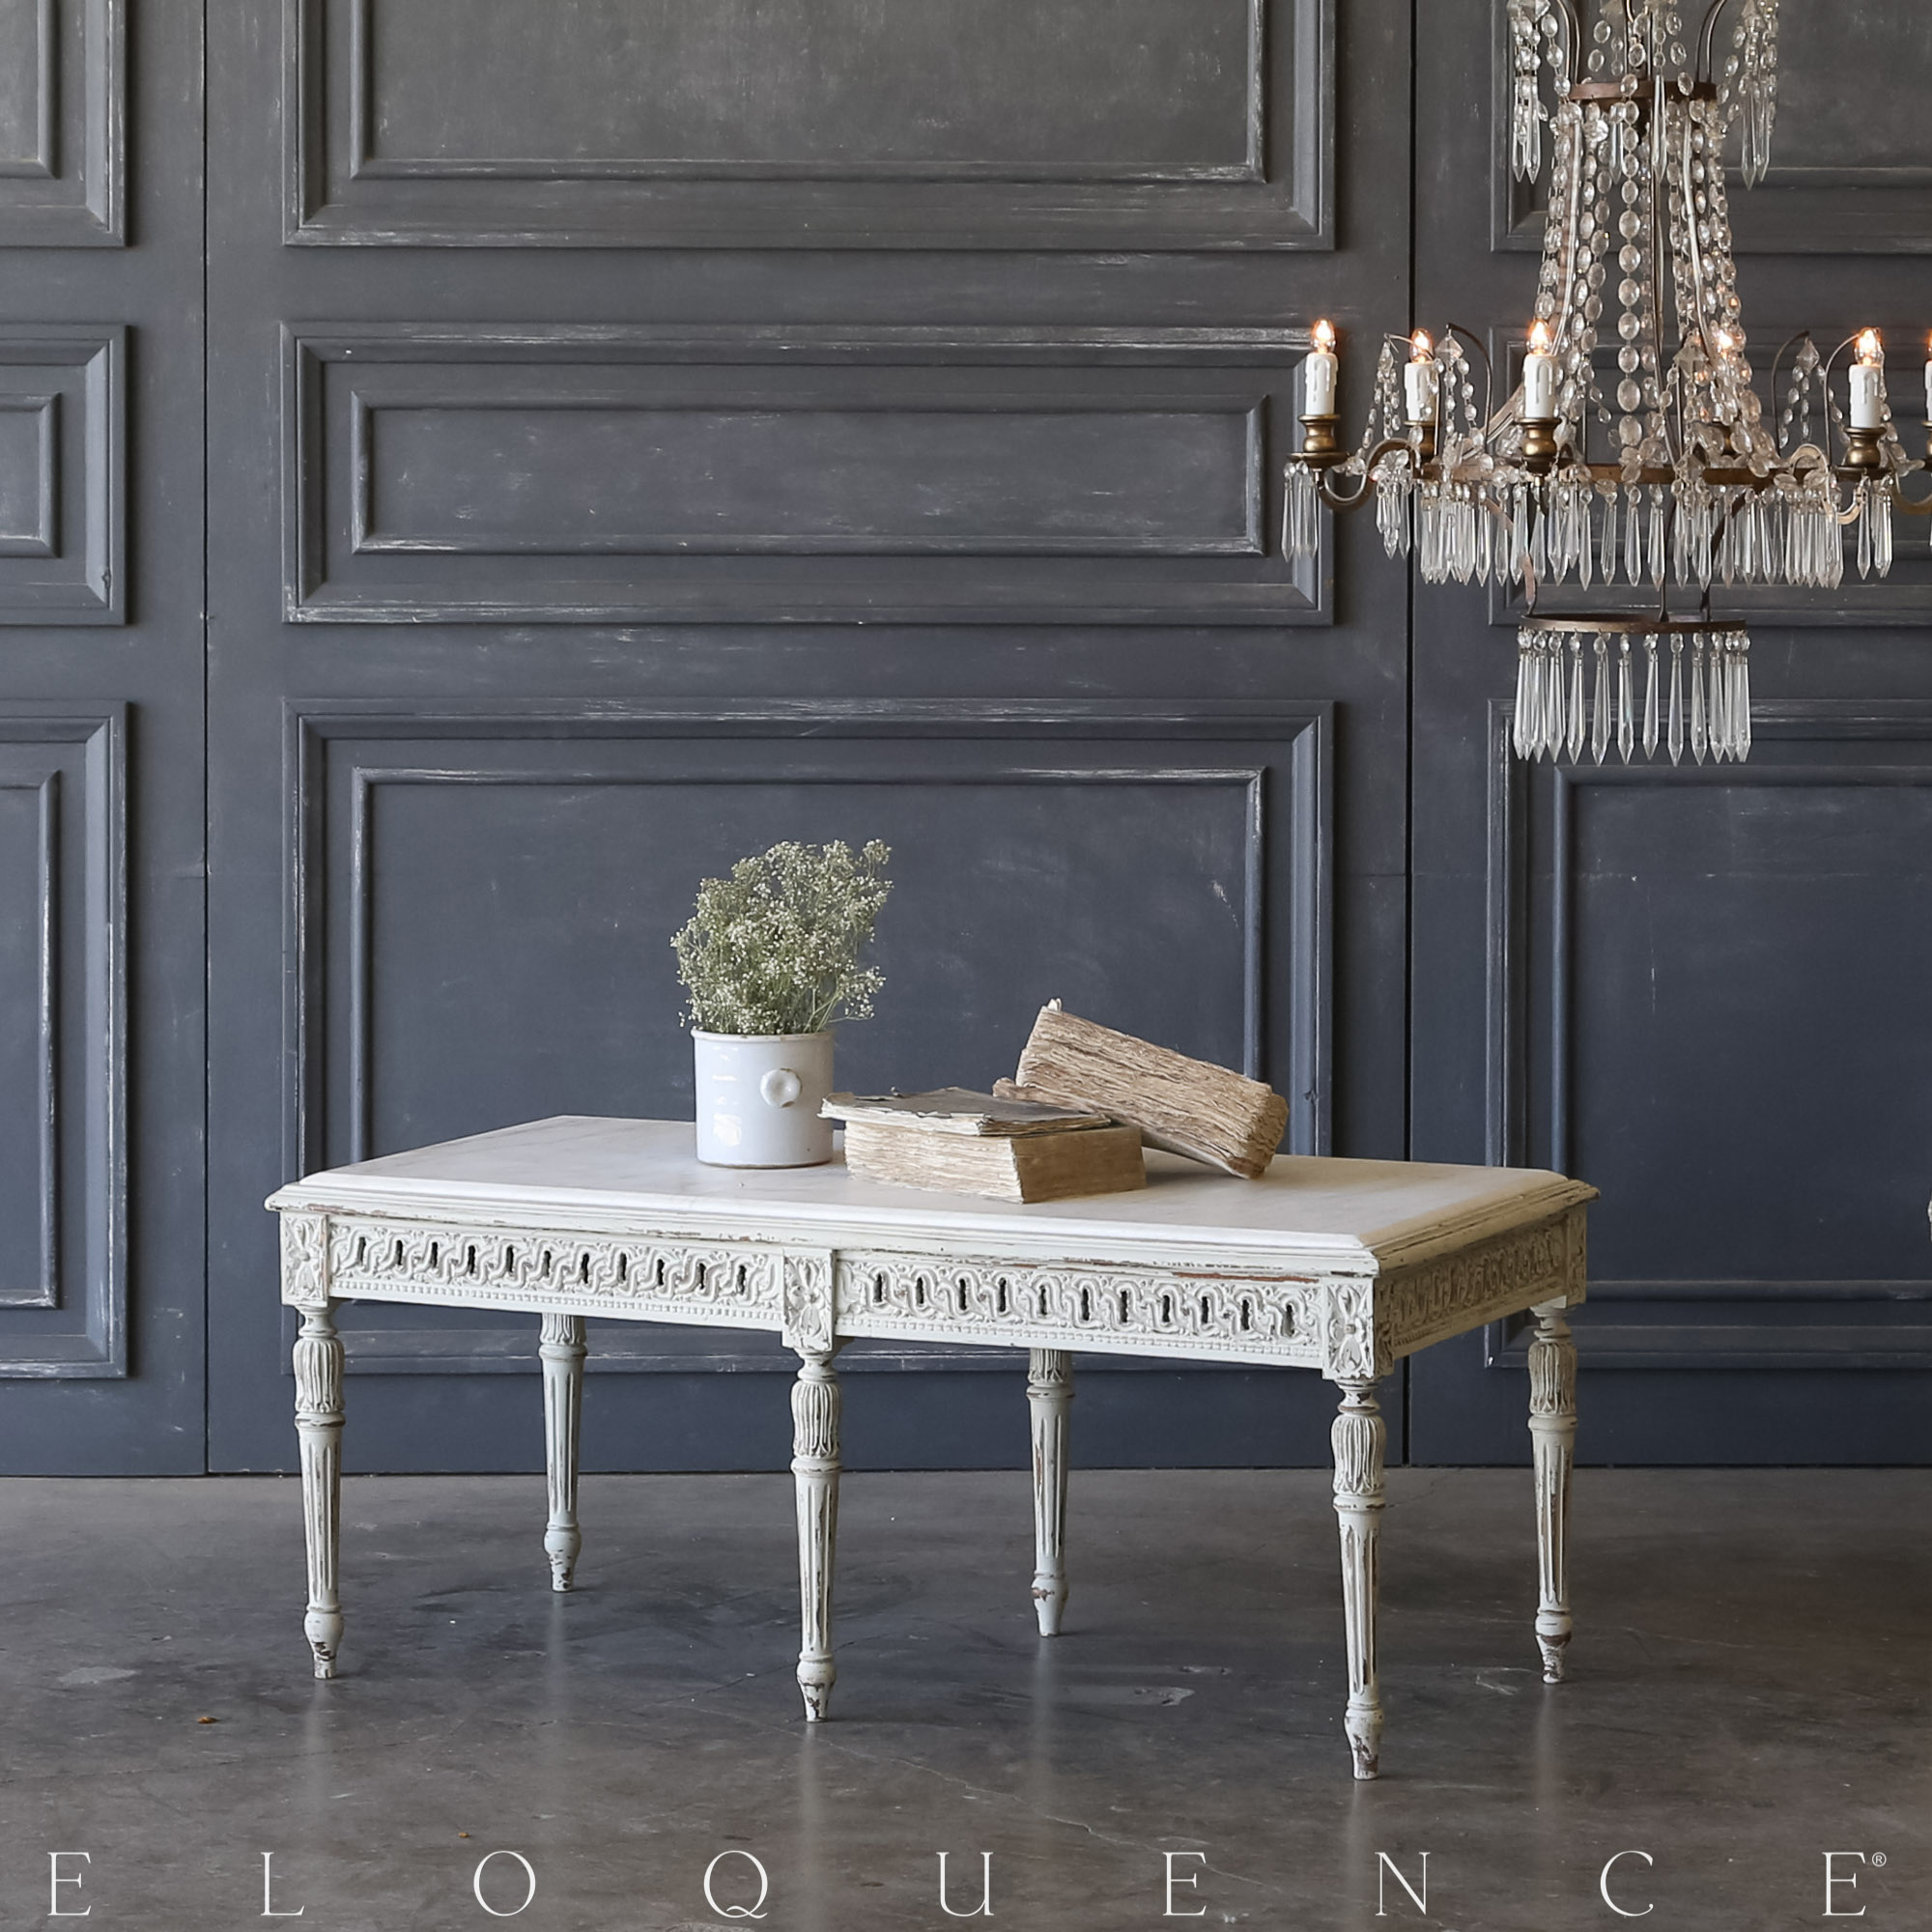 Eloquence® Vintage Rustic Pale Blue Coffee Table: 1940